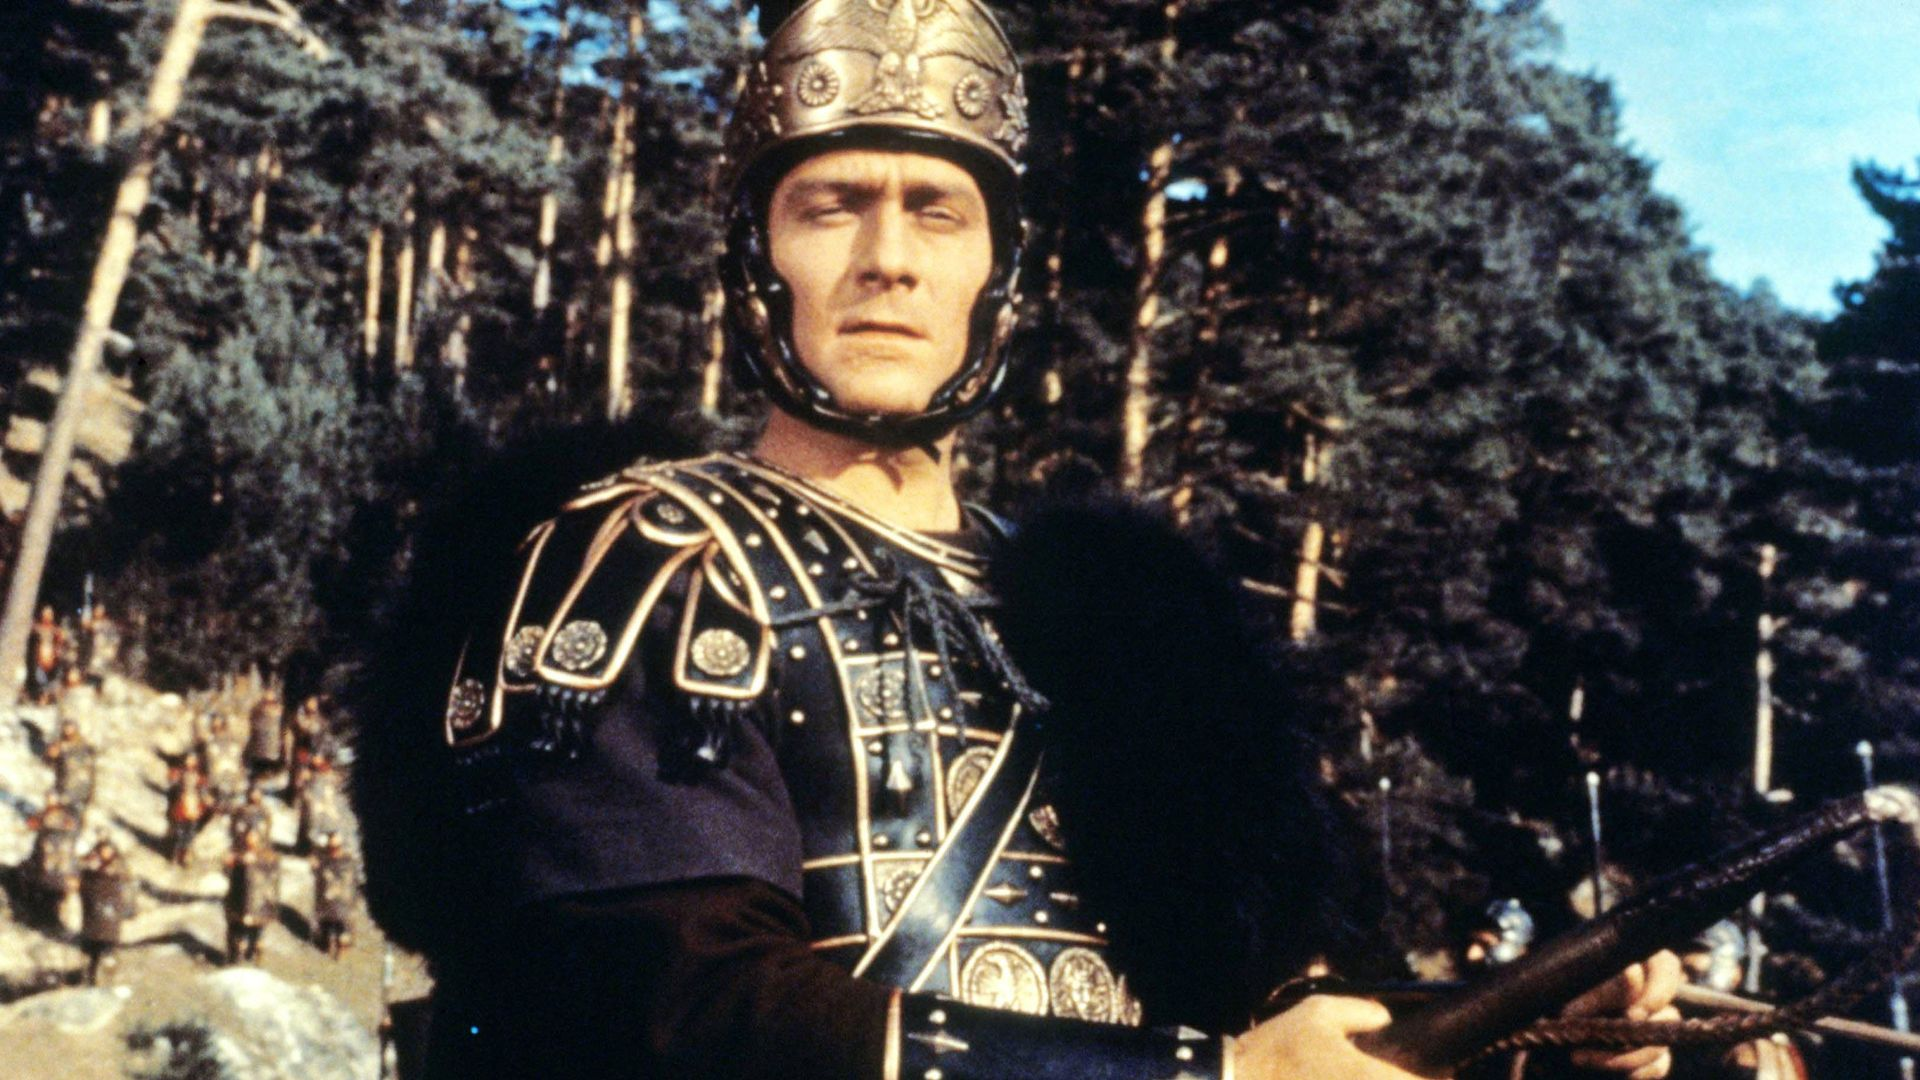 THE FALL OF THE ROMAN EMPIRE, Christopher Plummer, 1964